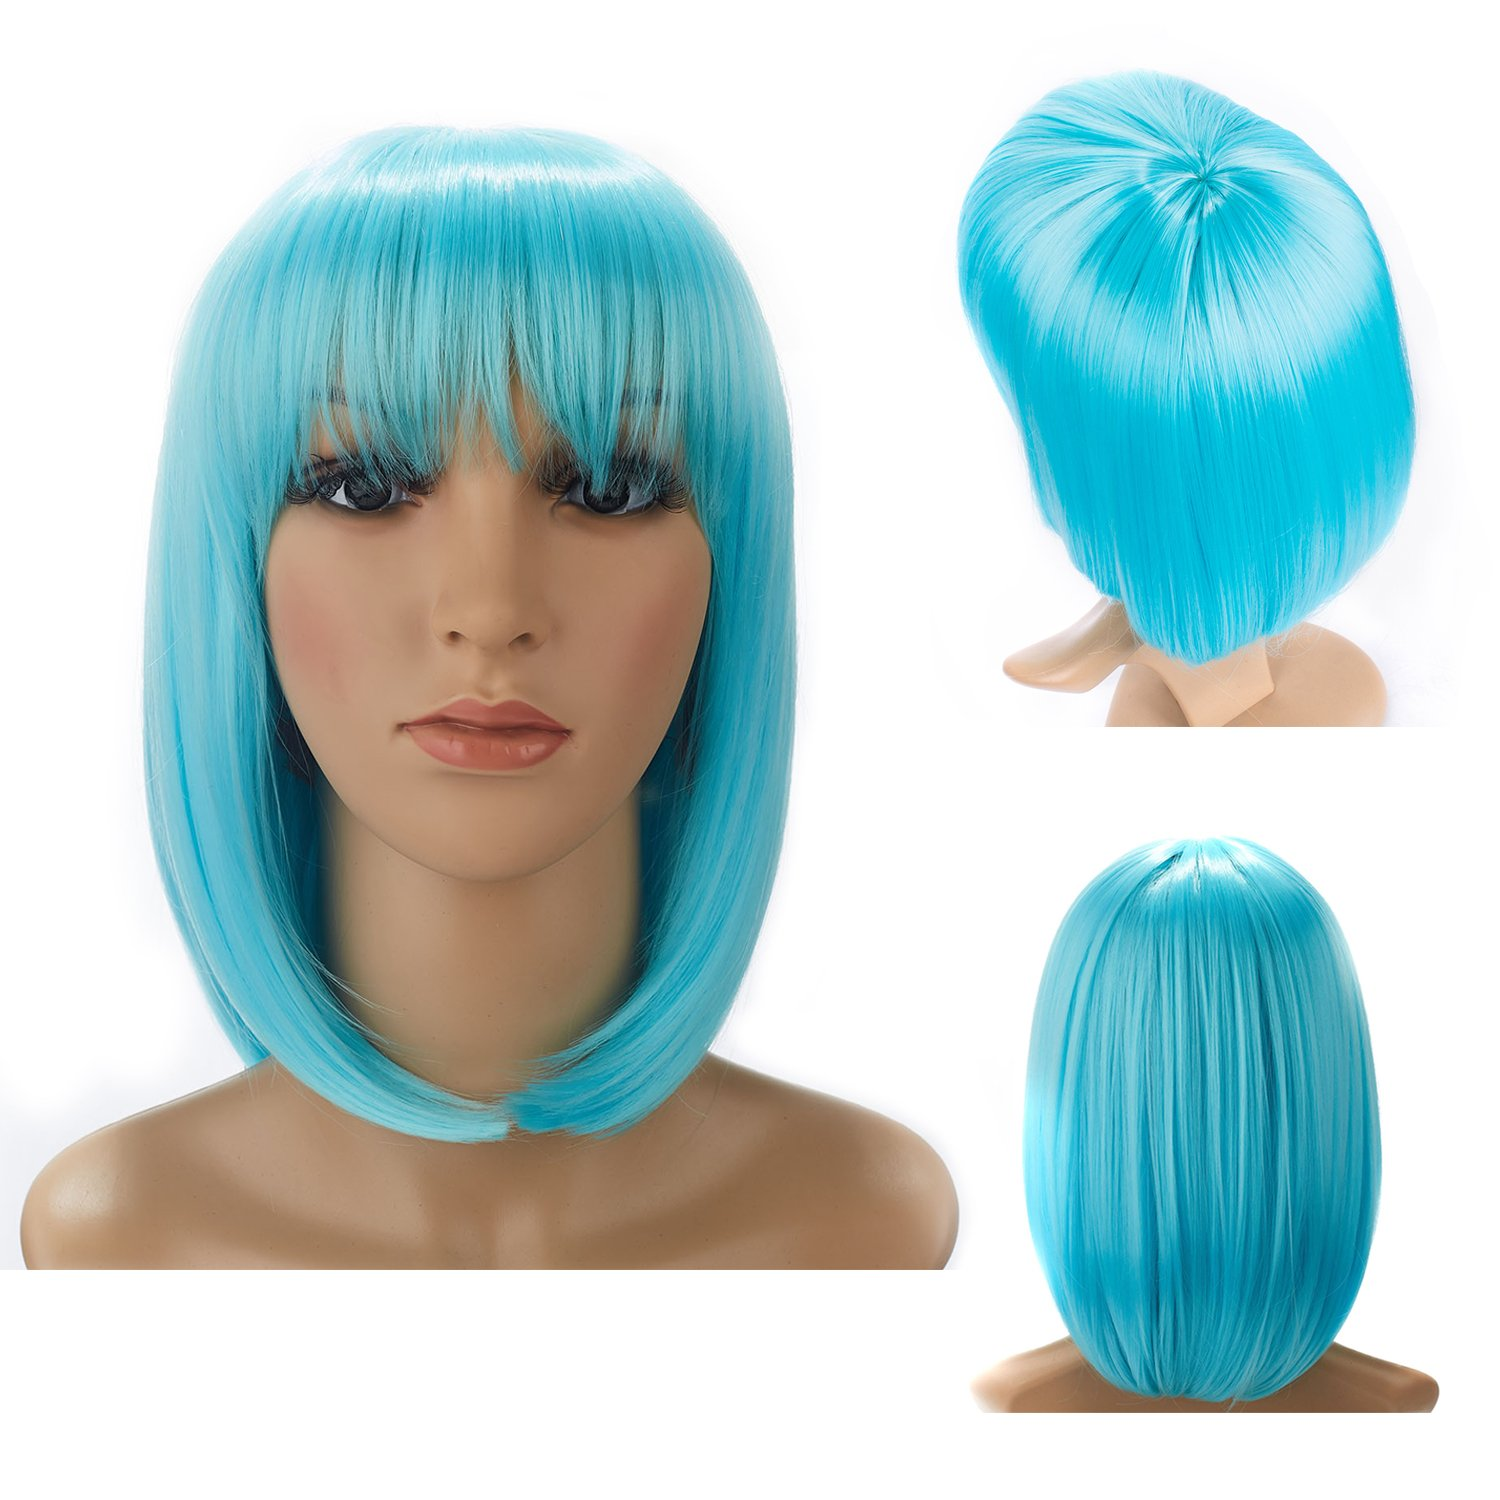 H& N Hair Breathable U Part Wig Caps Lace Weaving Caps for Making Wigs with Adjustable Straps Lace Swiss Medium Size